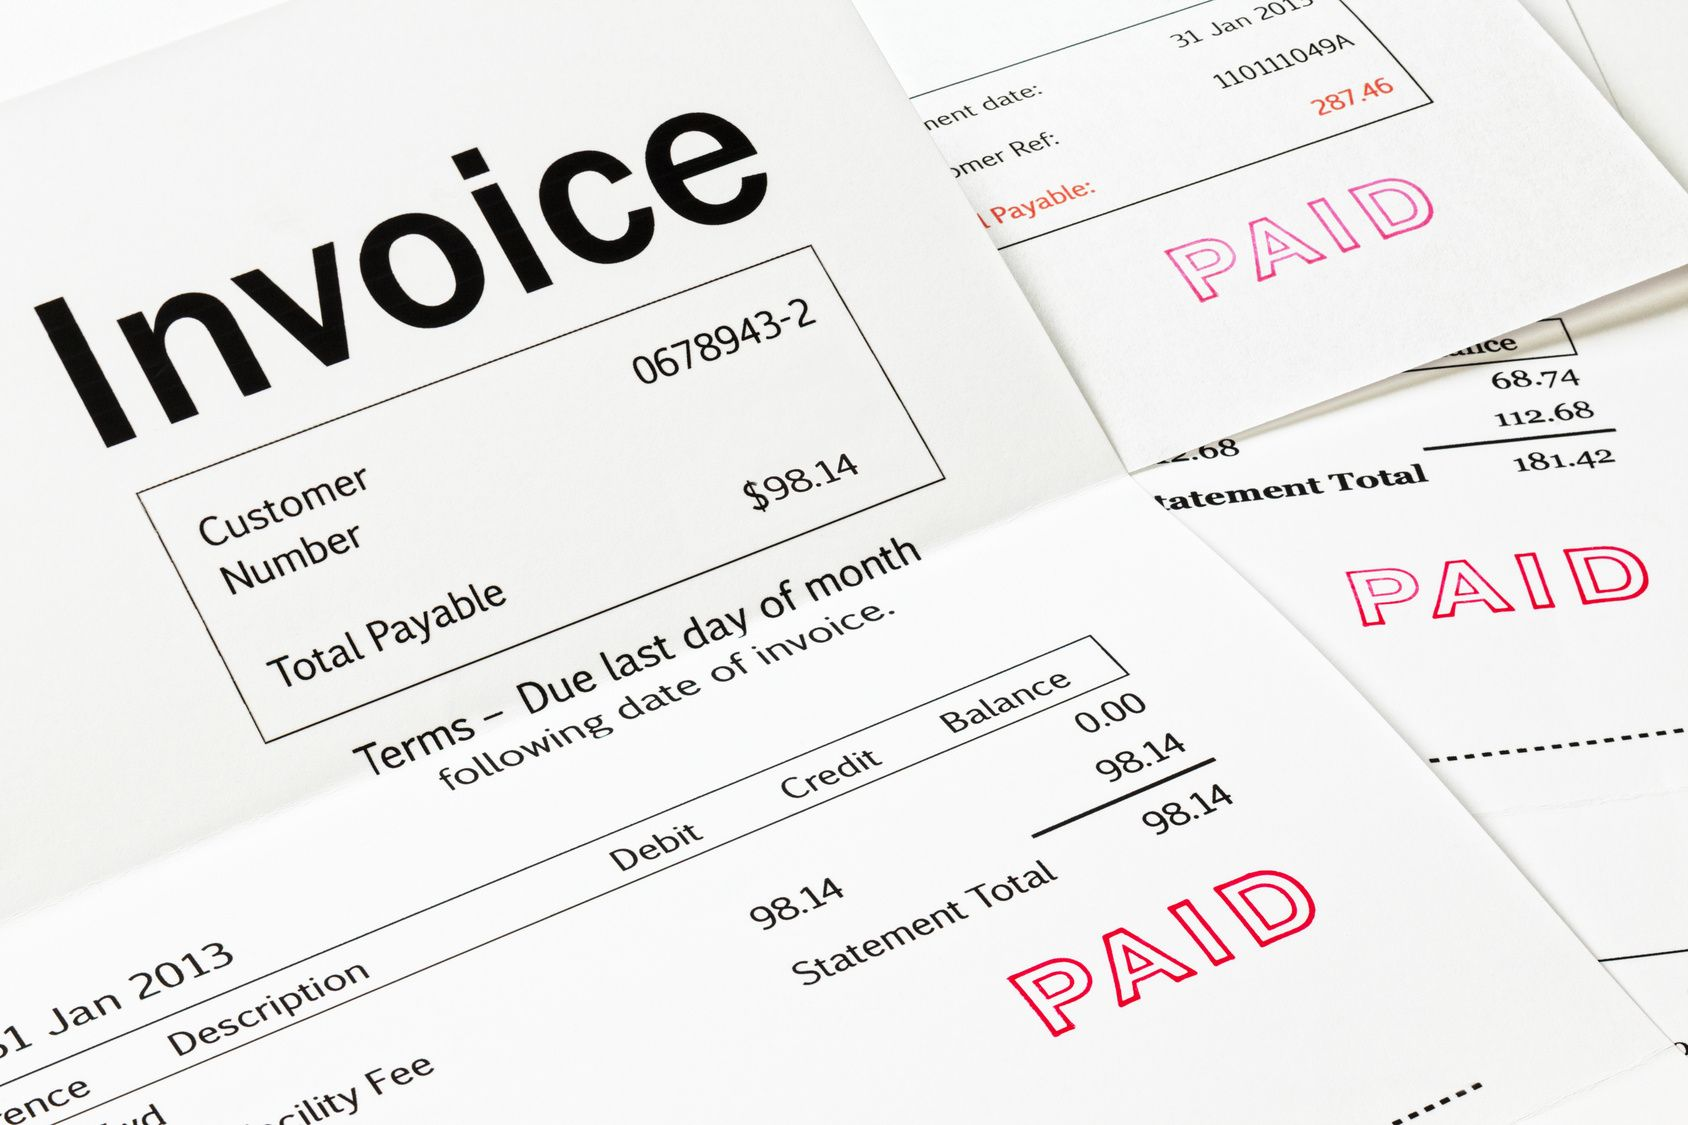 Request An Abbyy Flexicapture For Invoices Demo Paid Stamp